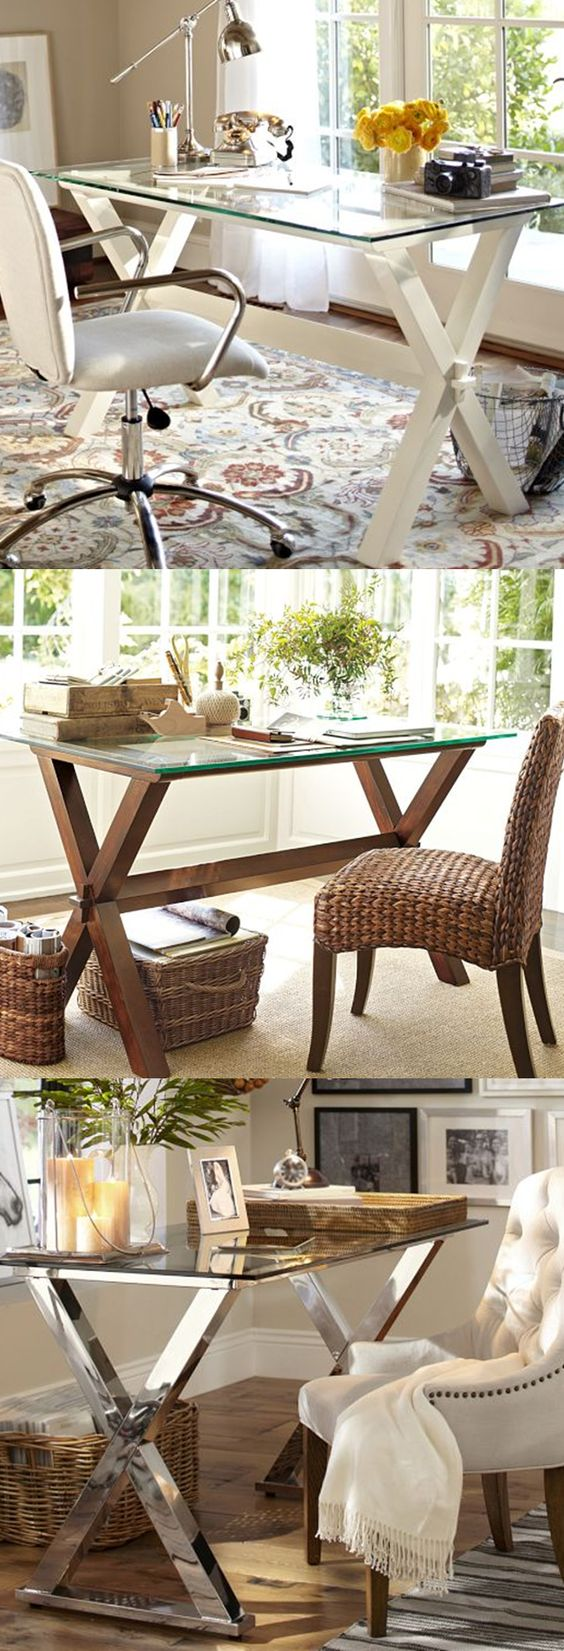 Pottery Barn desk - comes in 3 finishes - on sale for $299! http://rstyle.me/n/ebfhan2bn